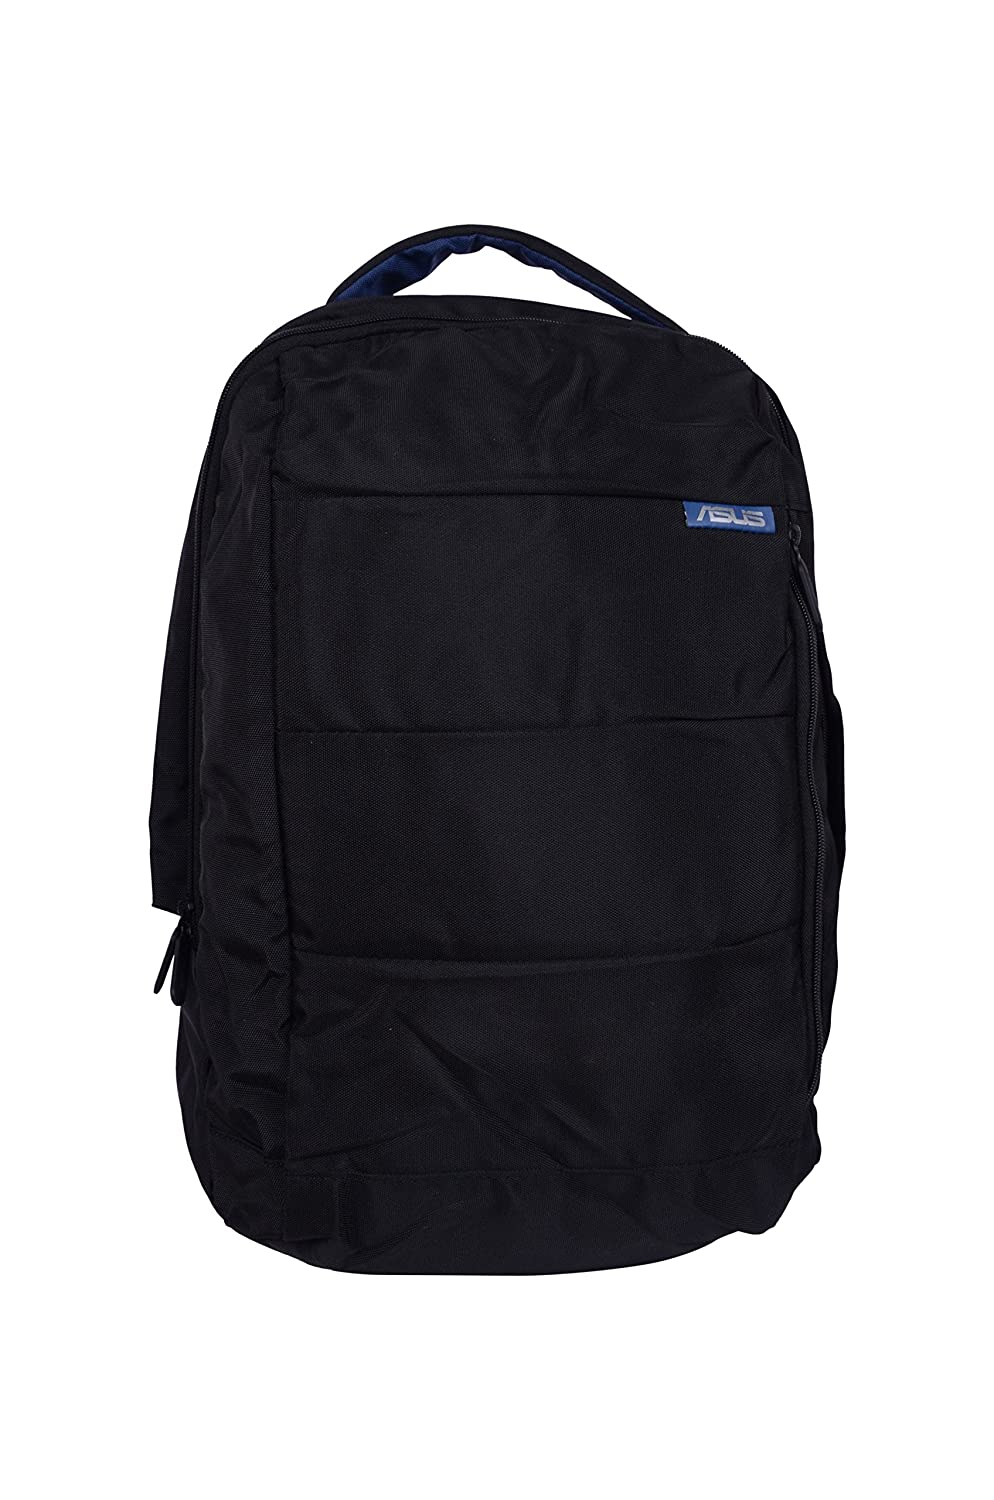 Fastrack bags for school - Bag